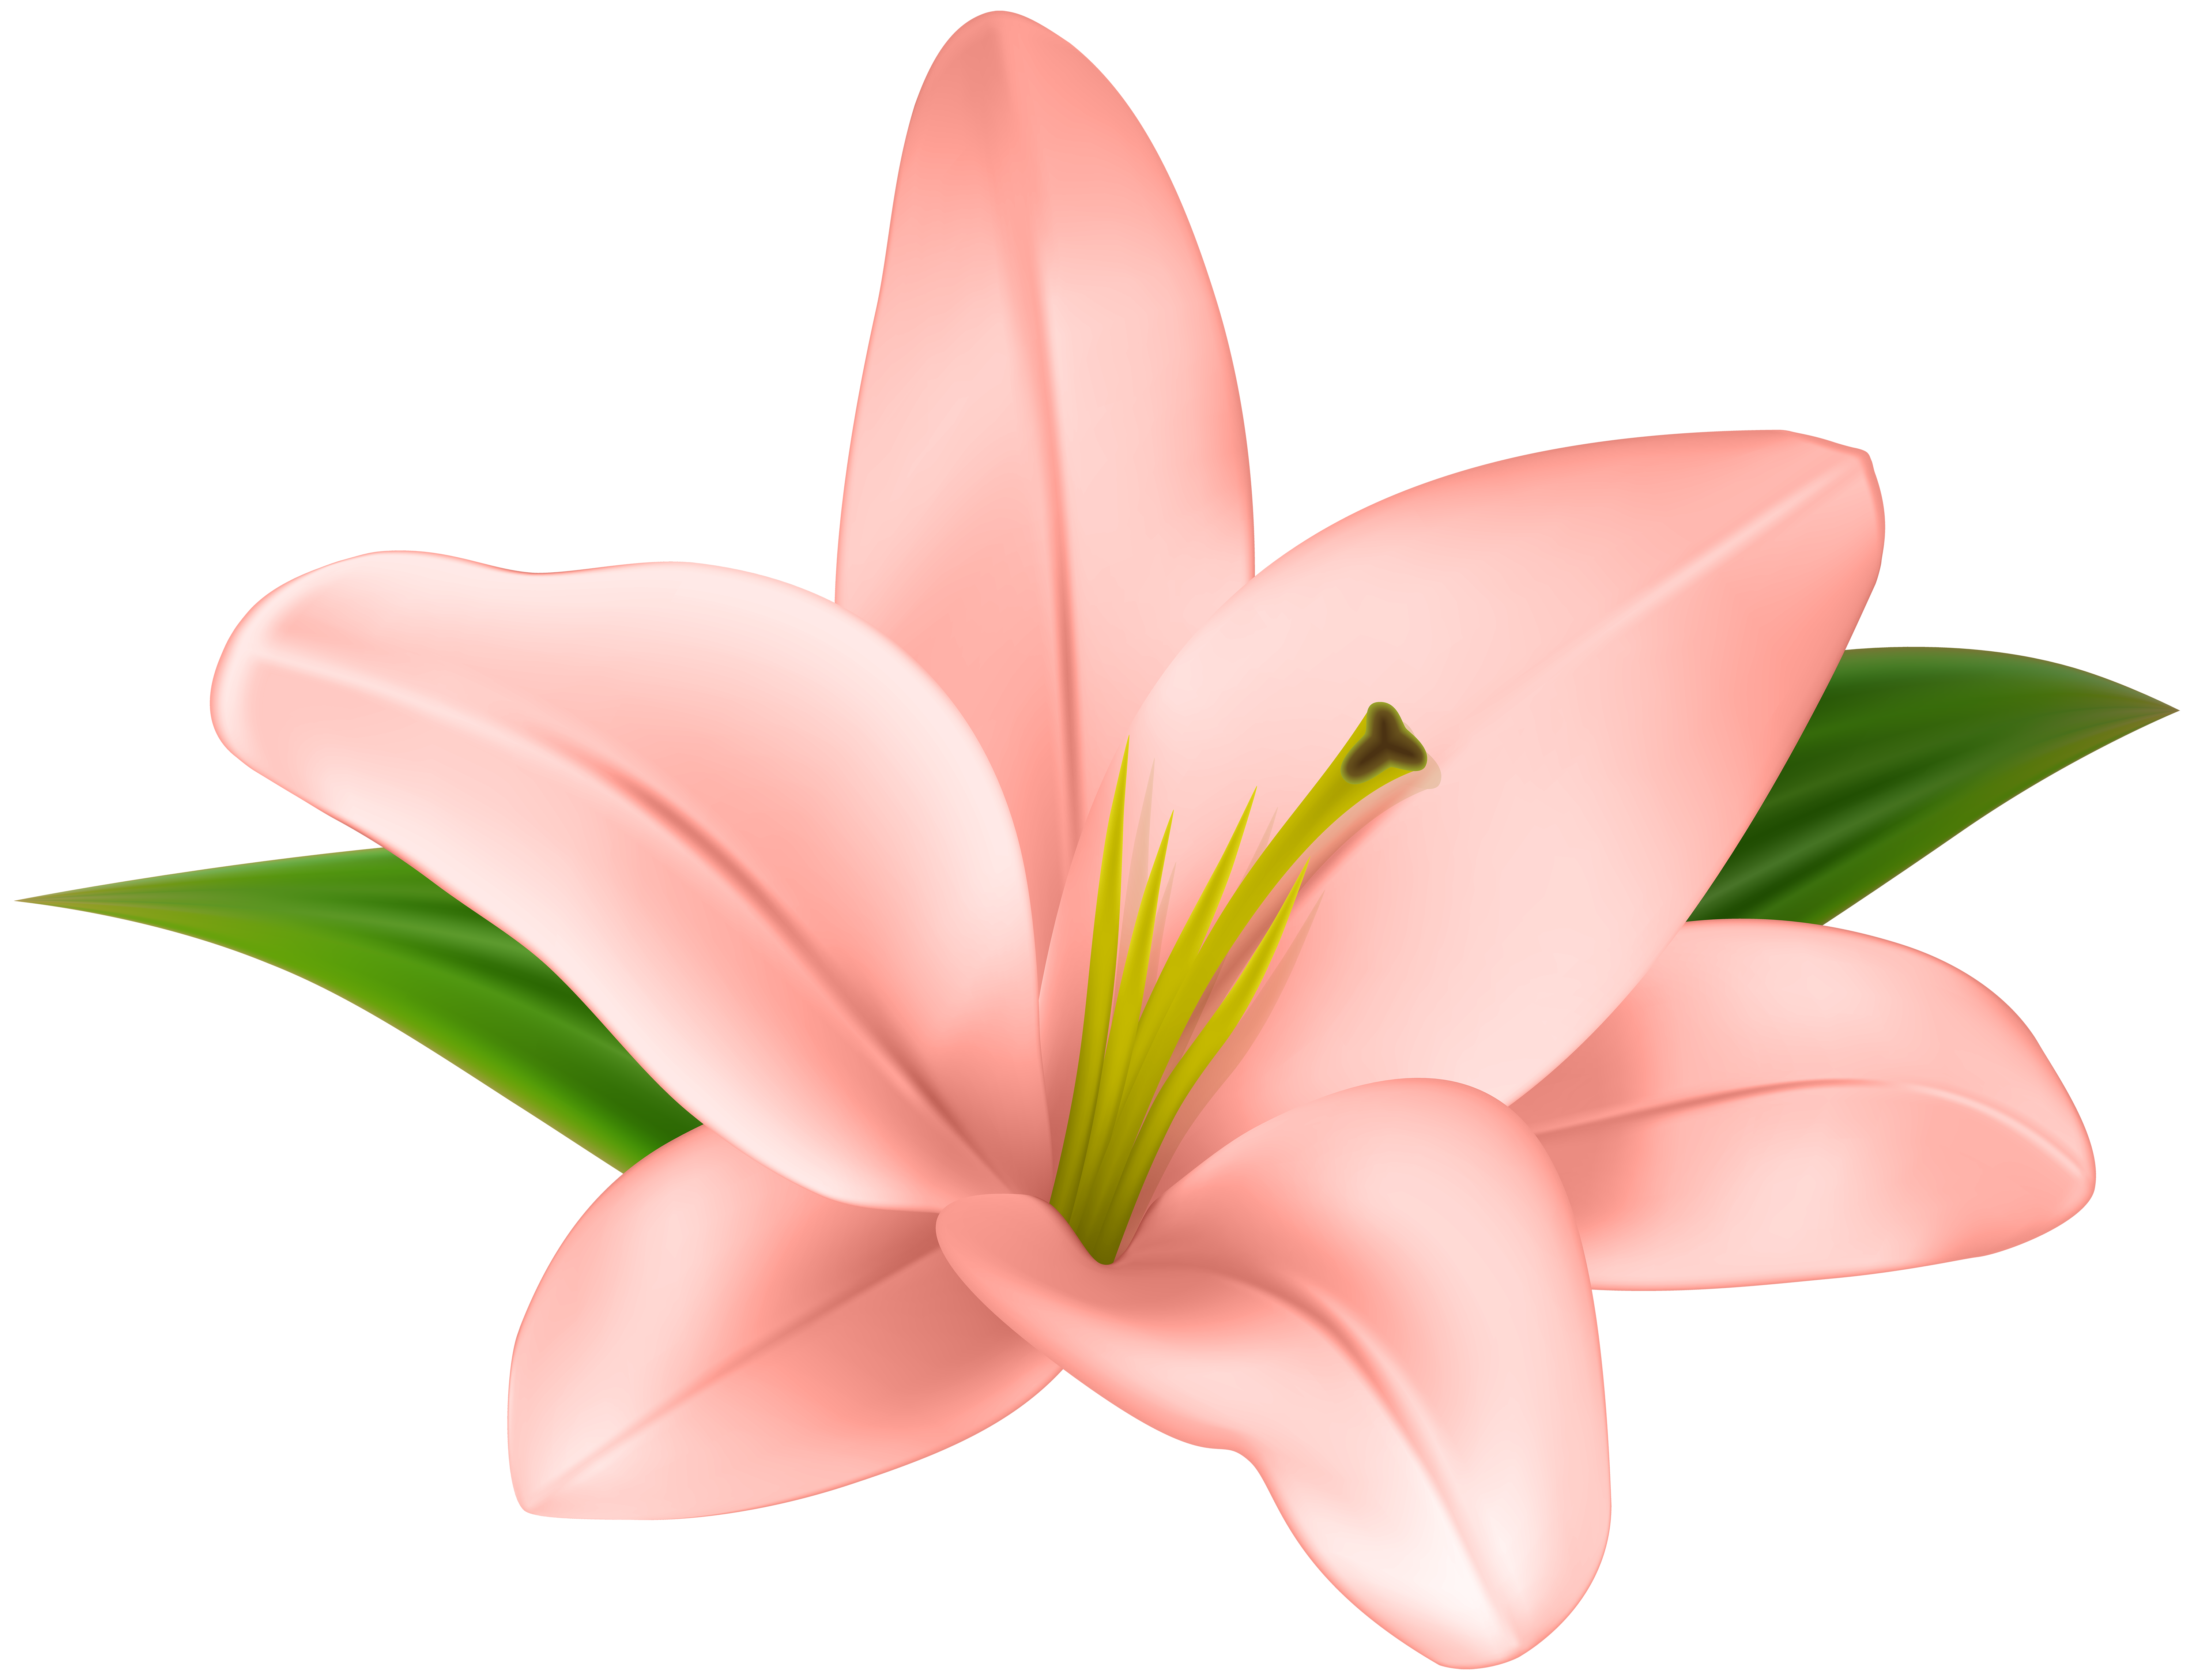 Lily flower art clipart images gallery for free download.